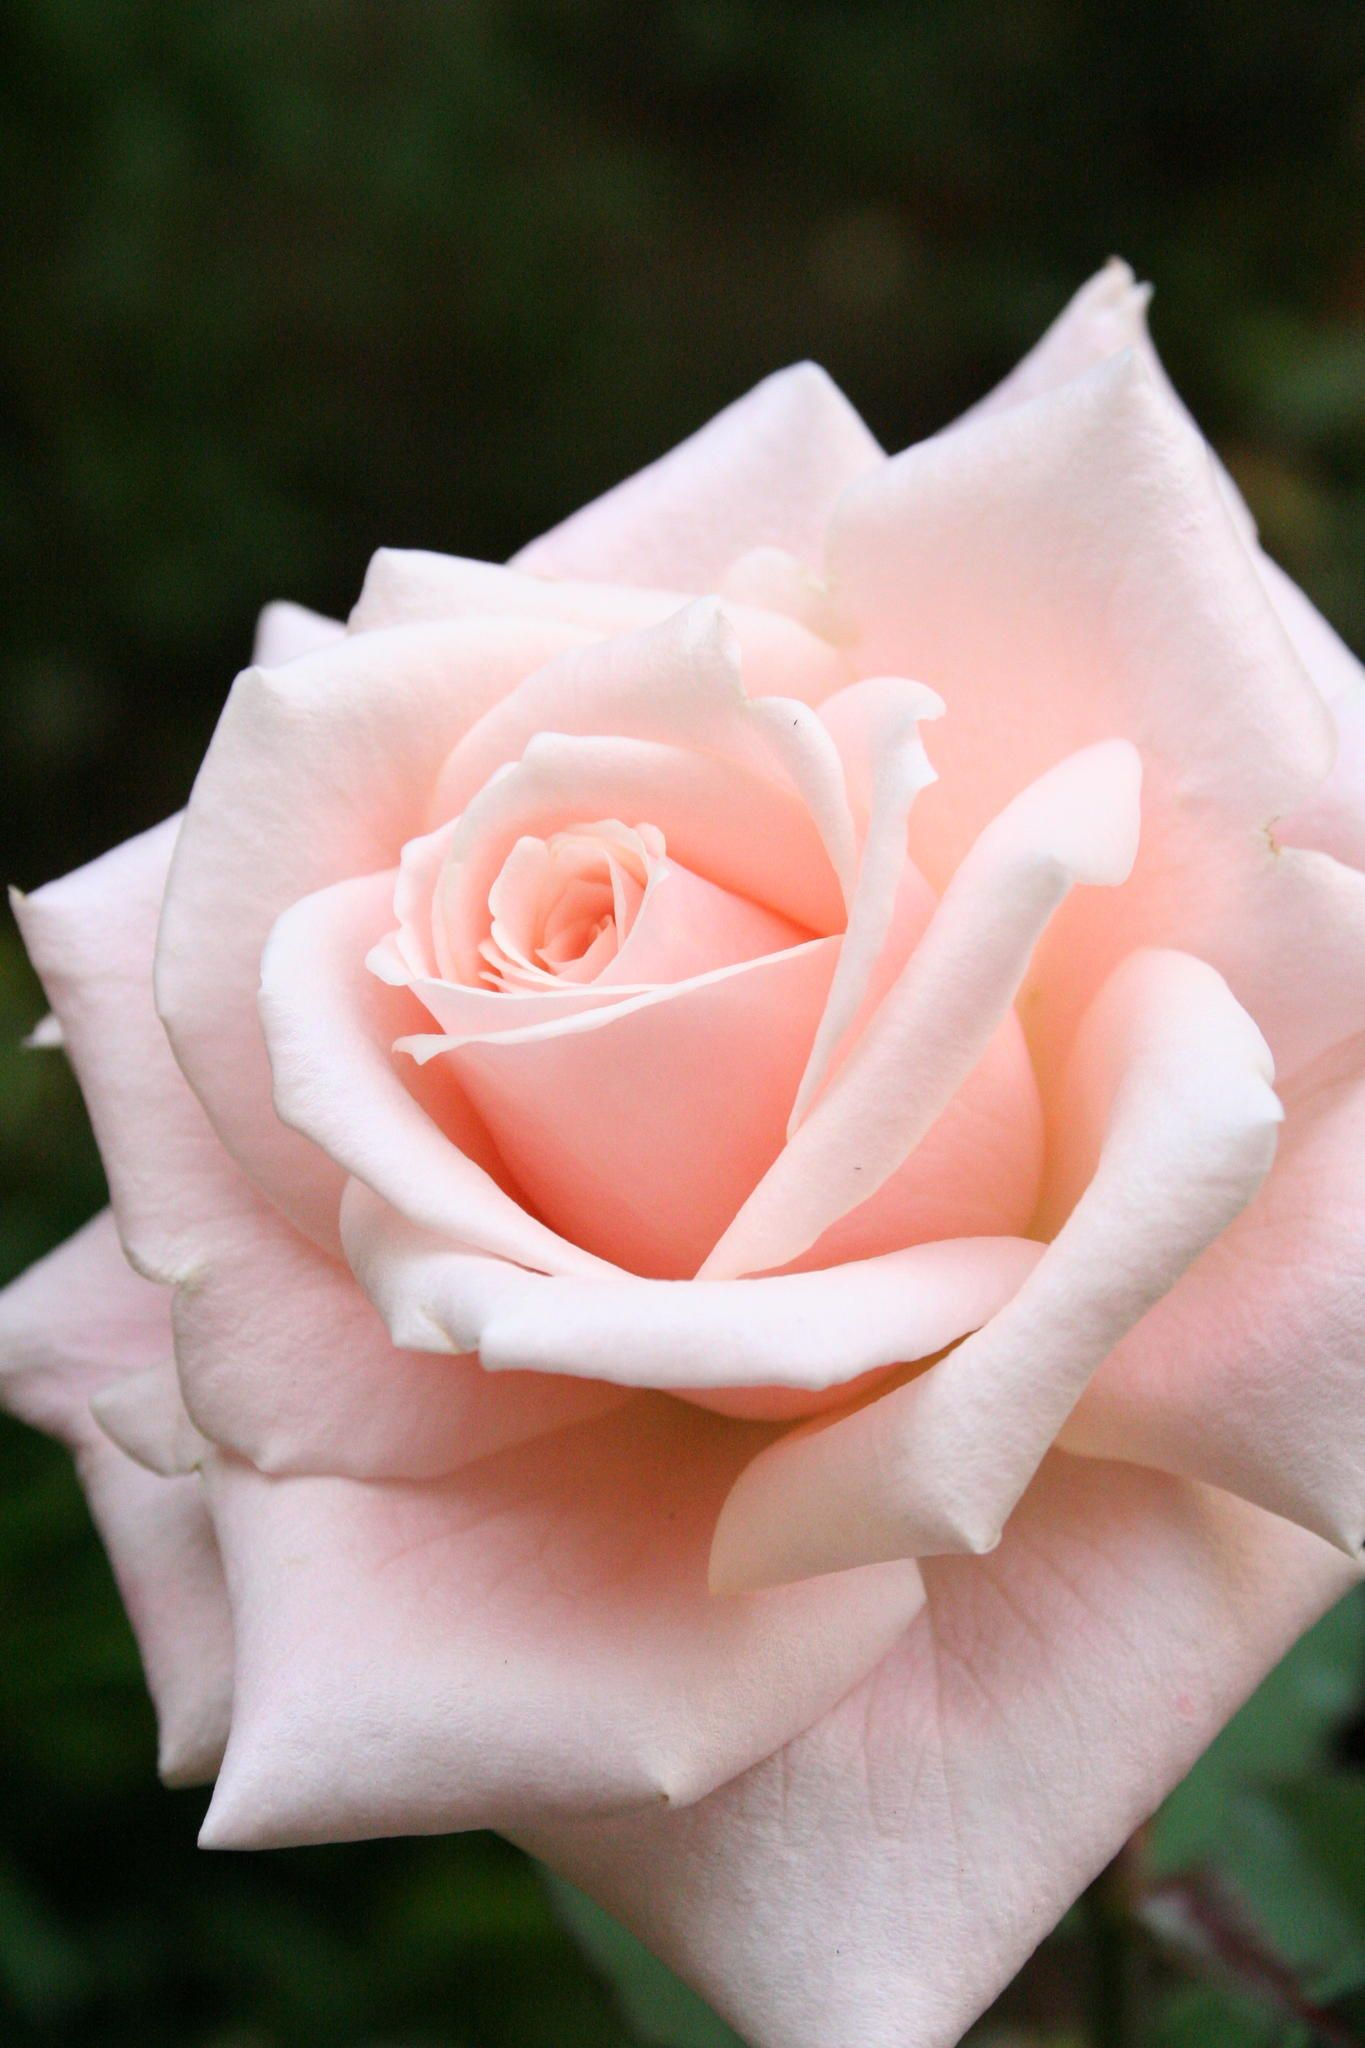 Pink Rose by iKenC via Yvonne Brodkin Reminds me of the